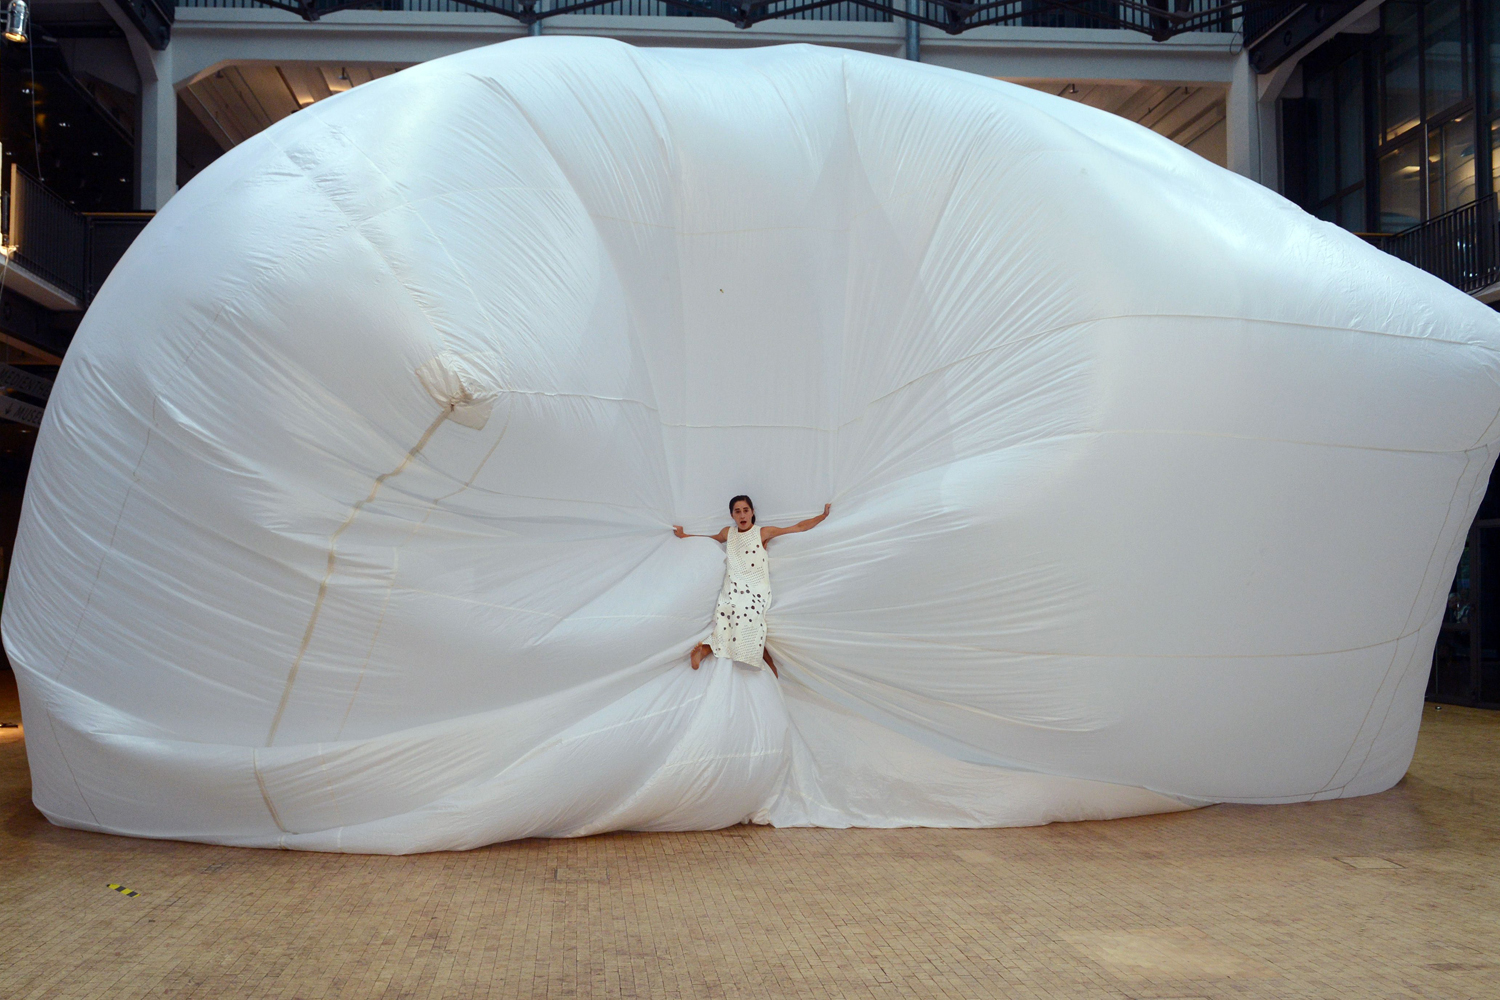 Sept. 26, 2013. A dancer perfoms the play  Wolke  (Cloud, 2002) by German choreographer Sasha Waltz as part of the exhibition 'Sasha Waltz - Installations Objects Performances' at the Center for Art and Media Technology (ZMK) in Karlsruhe, western Germany.